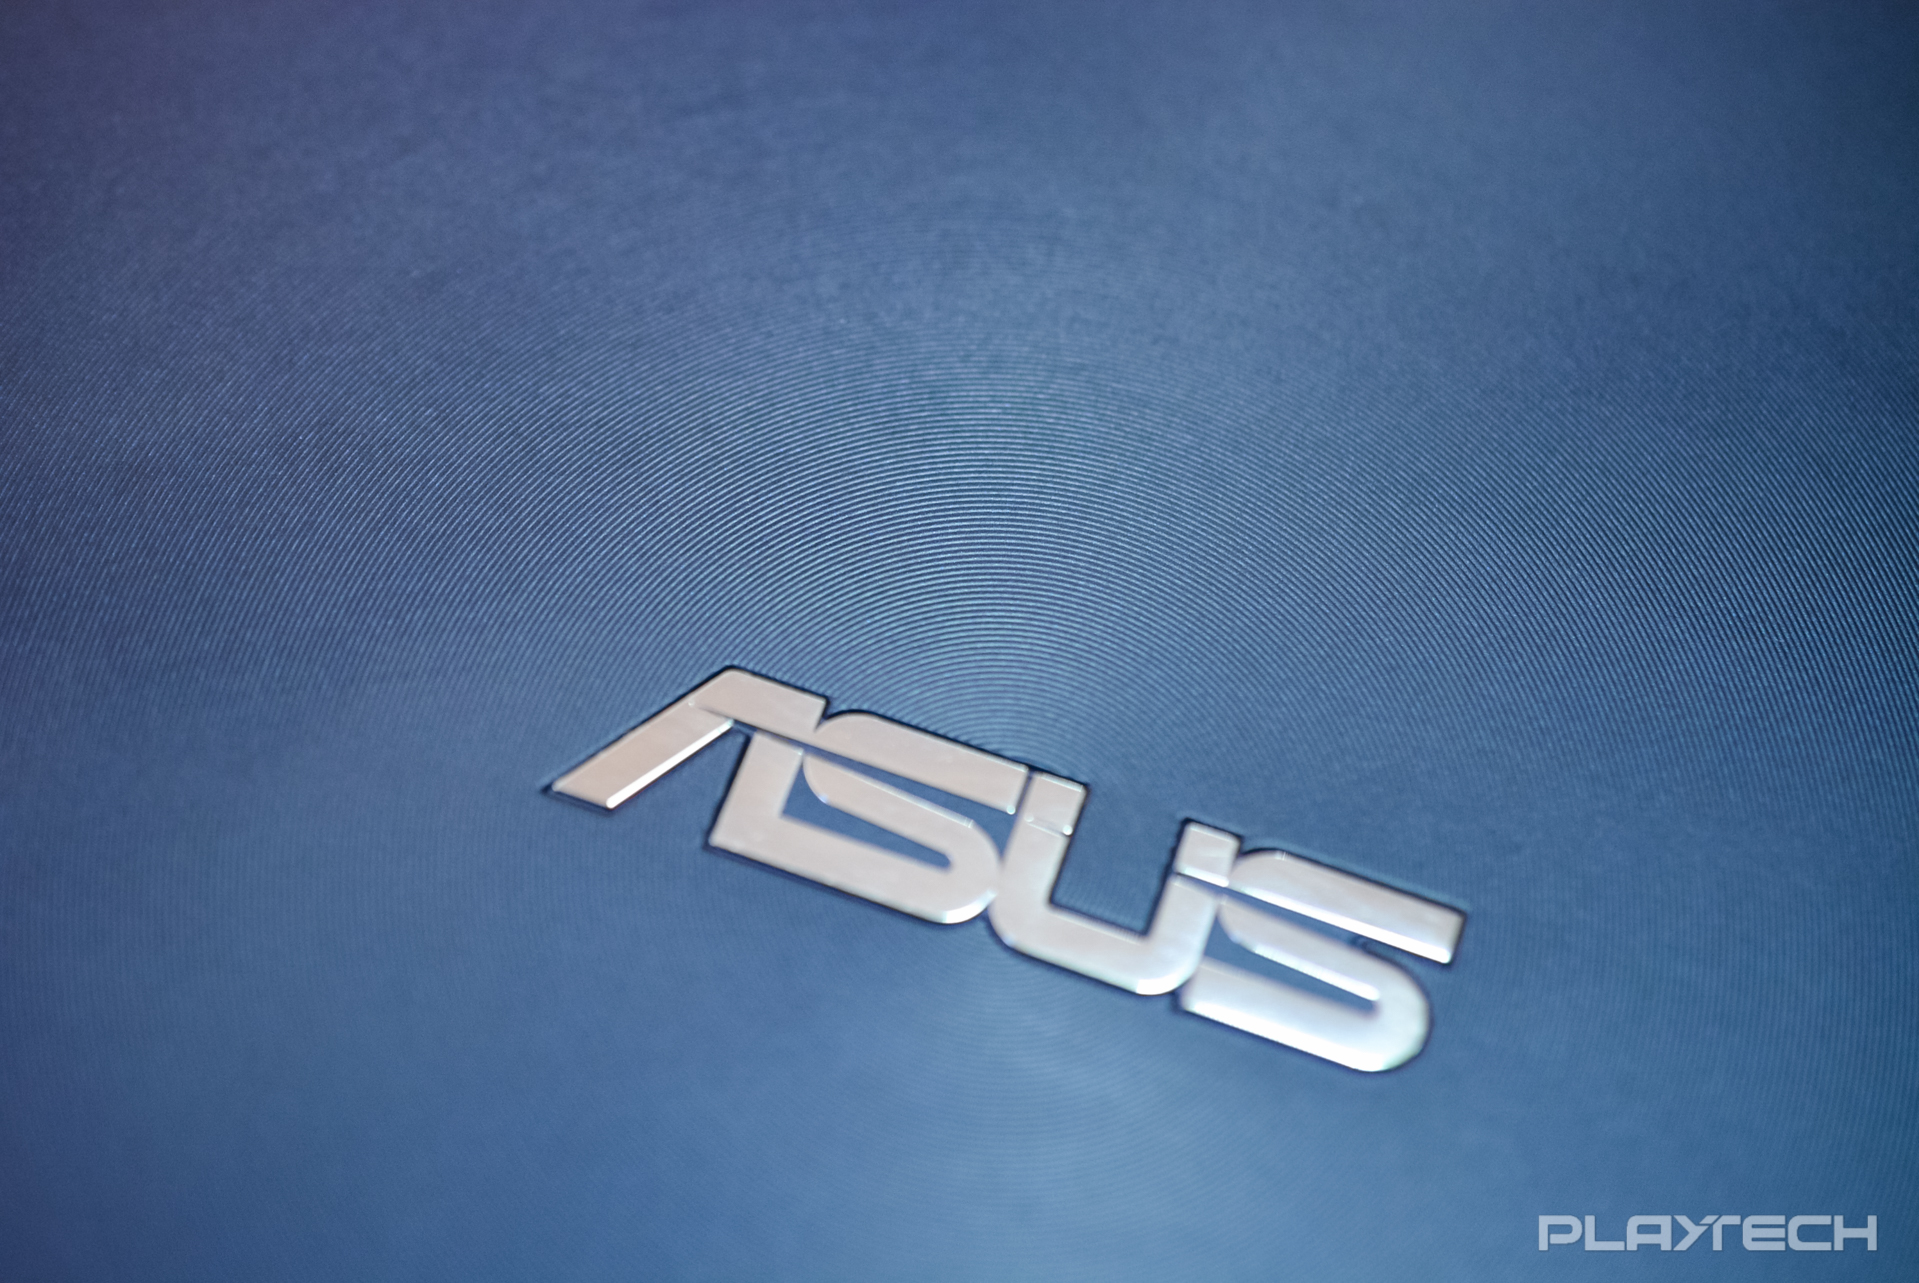 Asus Transformer Book T300F review Playtech (9)